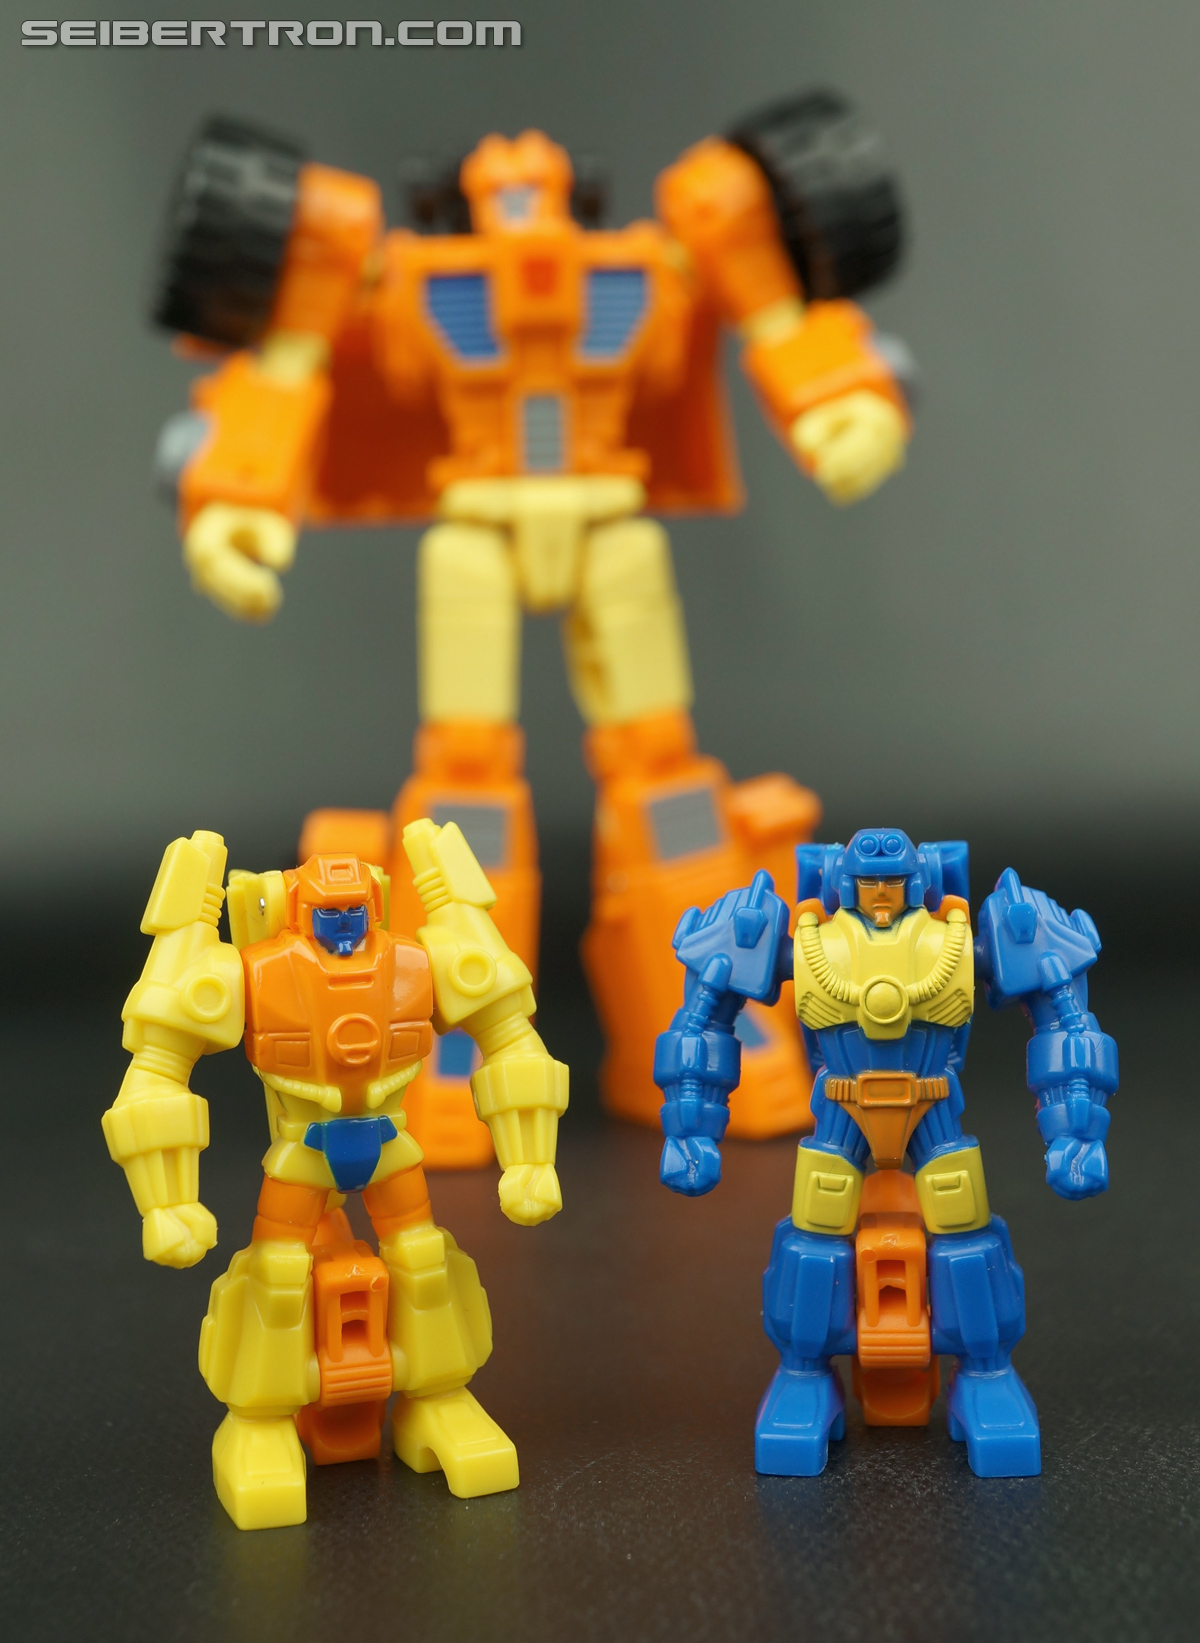 Transformers Generations Caliburst (Tracer) (Image #63 of 63)